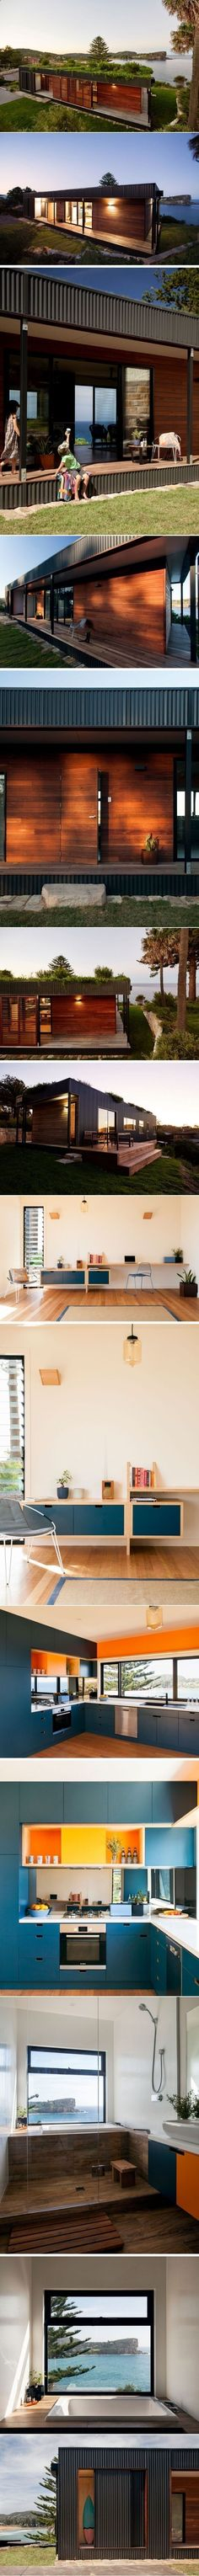 Container House - This prefab house with a lush green roof was built in six weeks | CONTEMPORIST - Who Else Wants Simple Step-By-Step Plans To Design And Build A Container Home From Scratch?